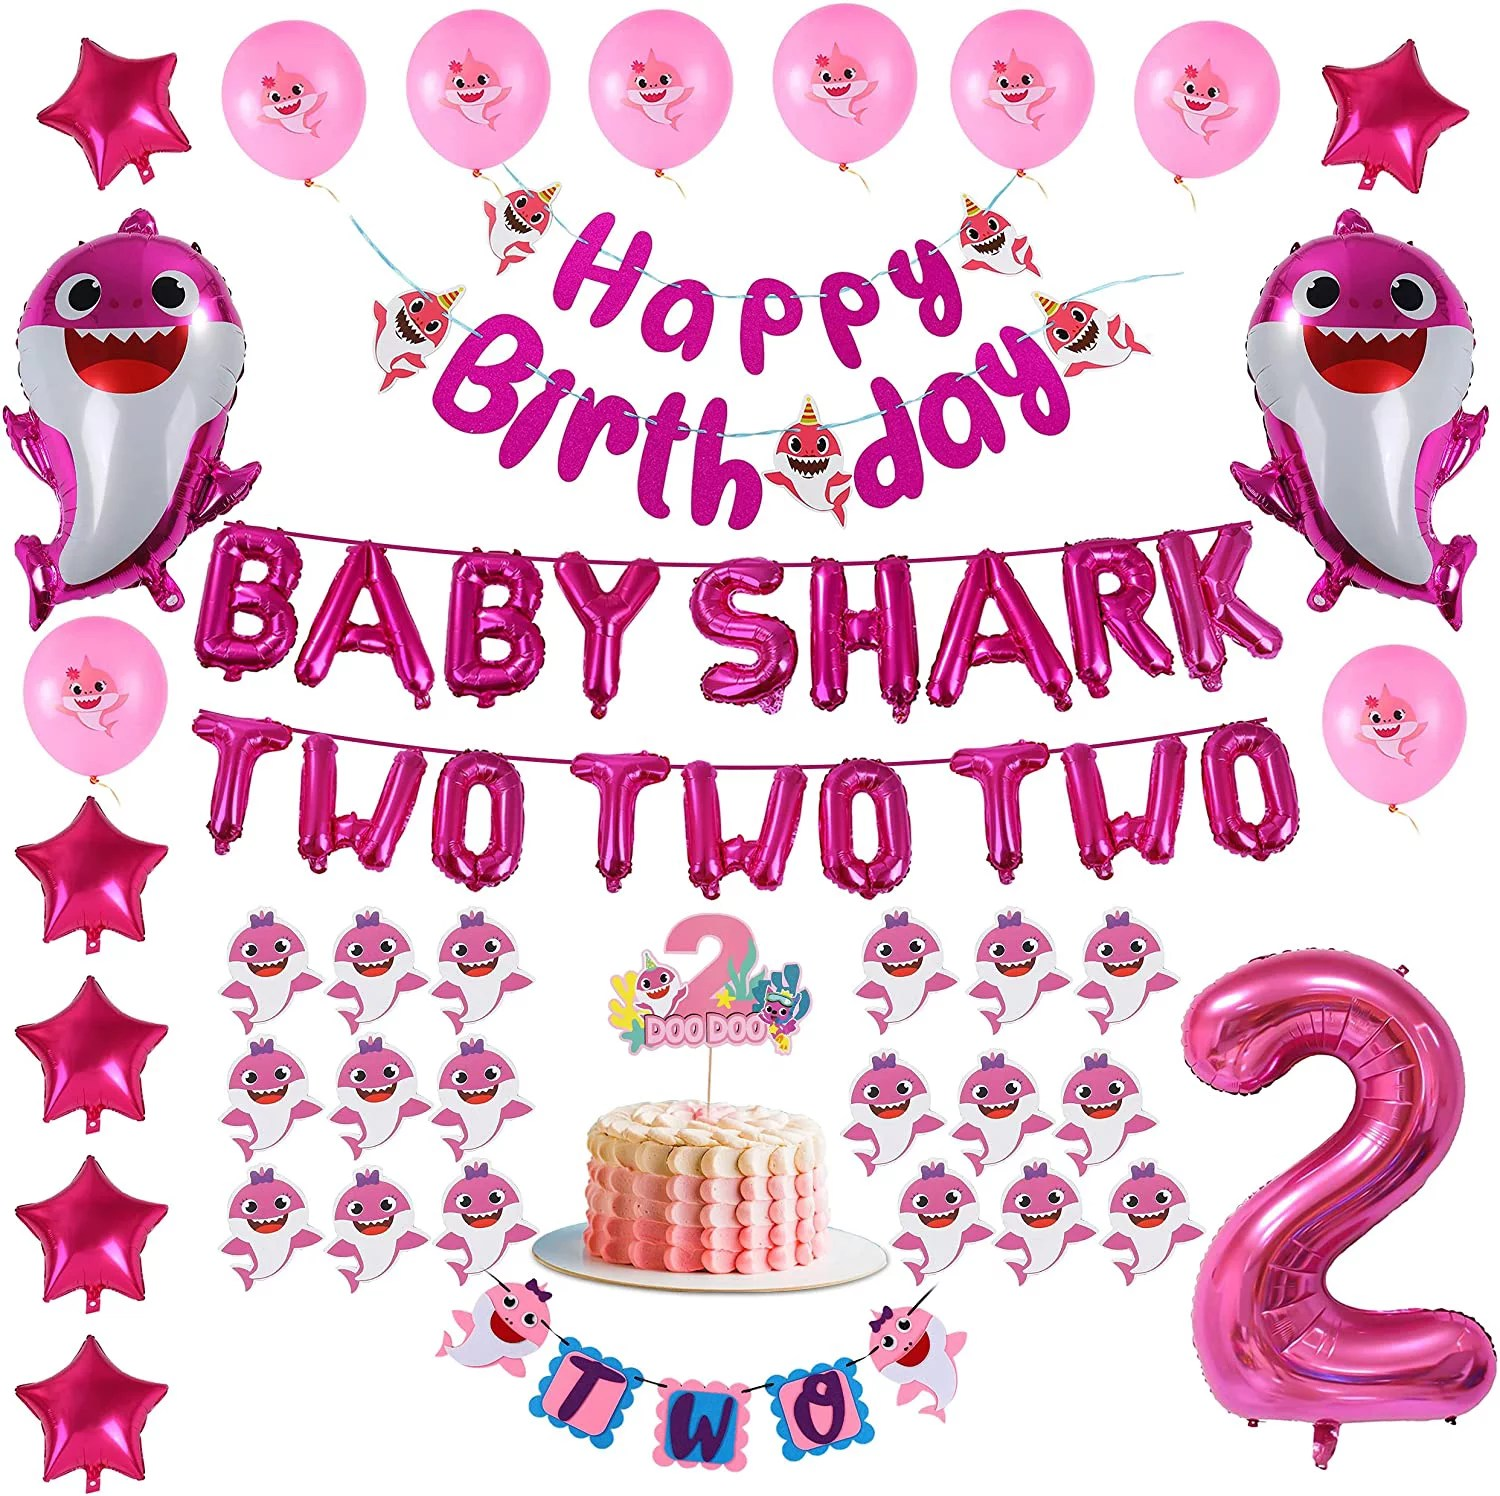 2nd Birthday Baby Shark Decorations Theme For Girl Pink Baby Shark Two Two No 2 Foil Balloons Cake Cupcake Toppers Walmart Com Walmart Com